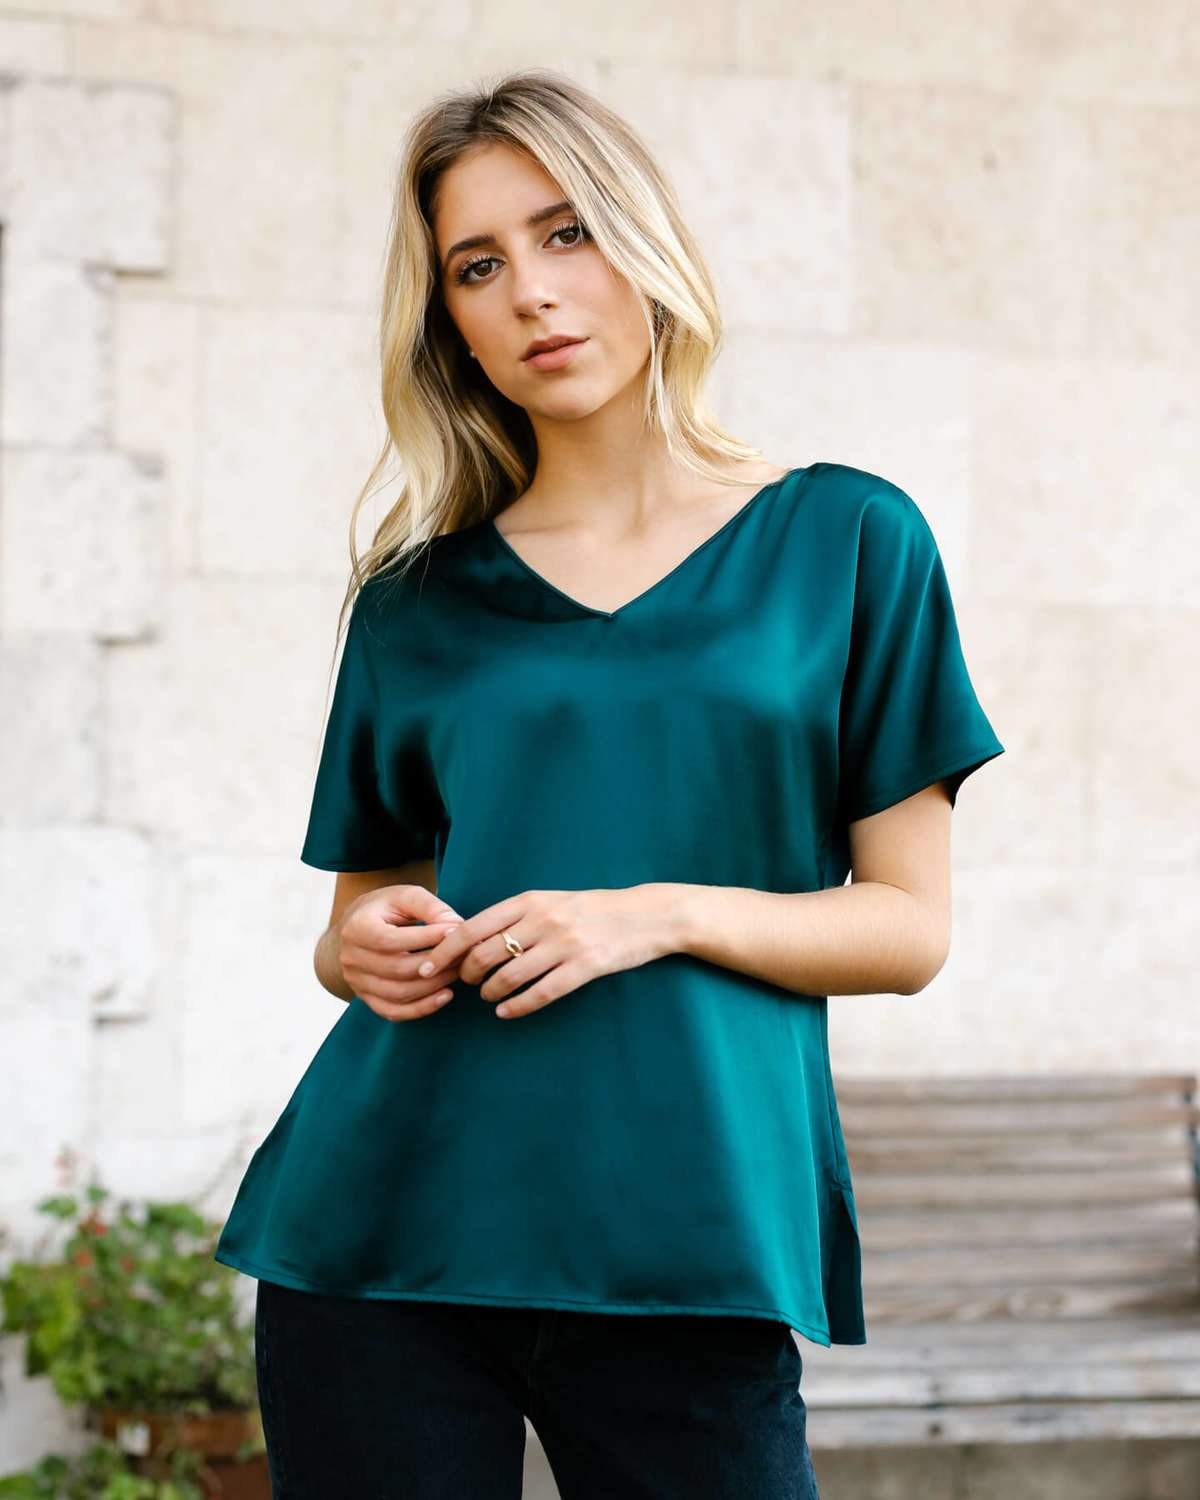 Verona Silk Blouse - Emerald Green